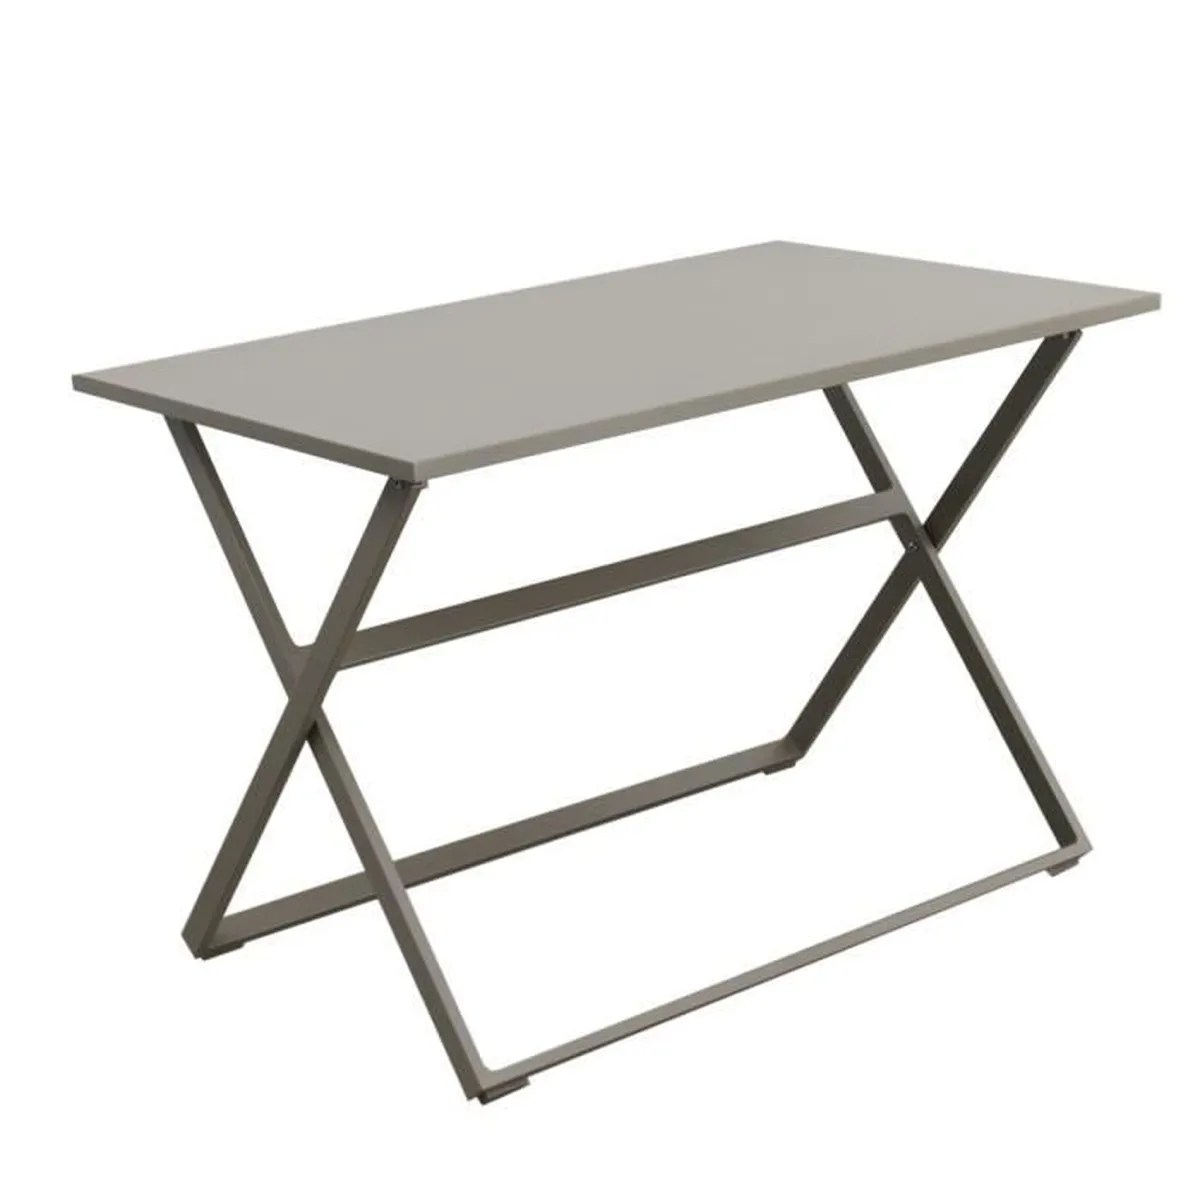 Table Aluminium Jardin Table De Jardin Pliable Rectangulaire En Aluminium Rosy Tresi Champagne